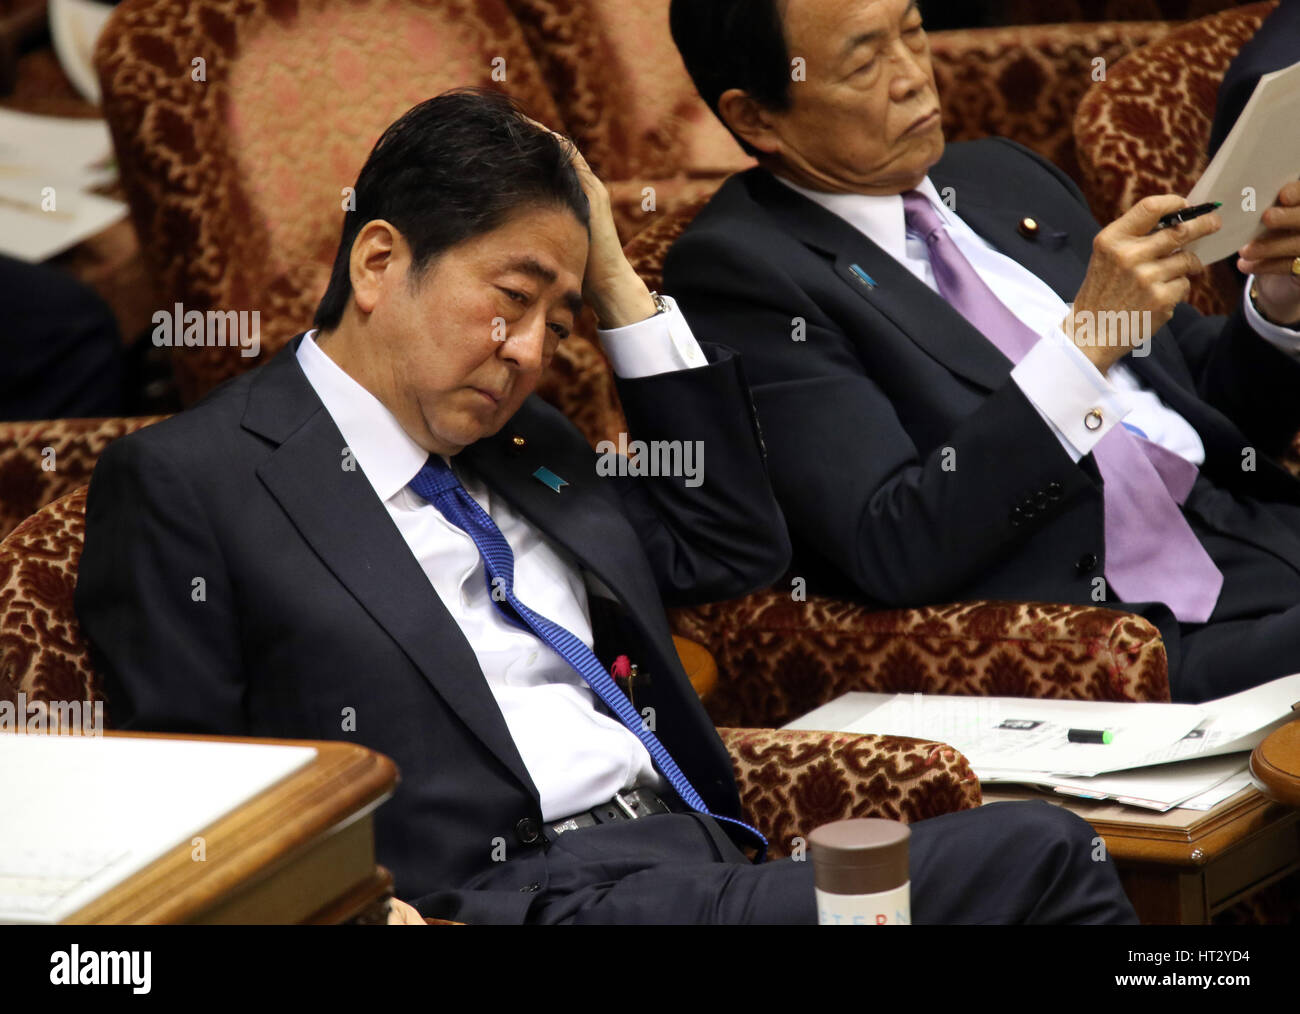 Tokyo, Japan. 6th Mar, 2017. Japanese Prime Minister Shinzo Abe listen to a question by an opposition lawmaker at - Stock Image